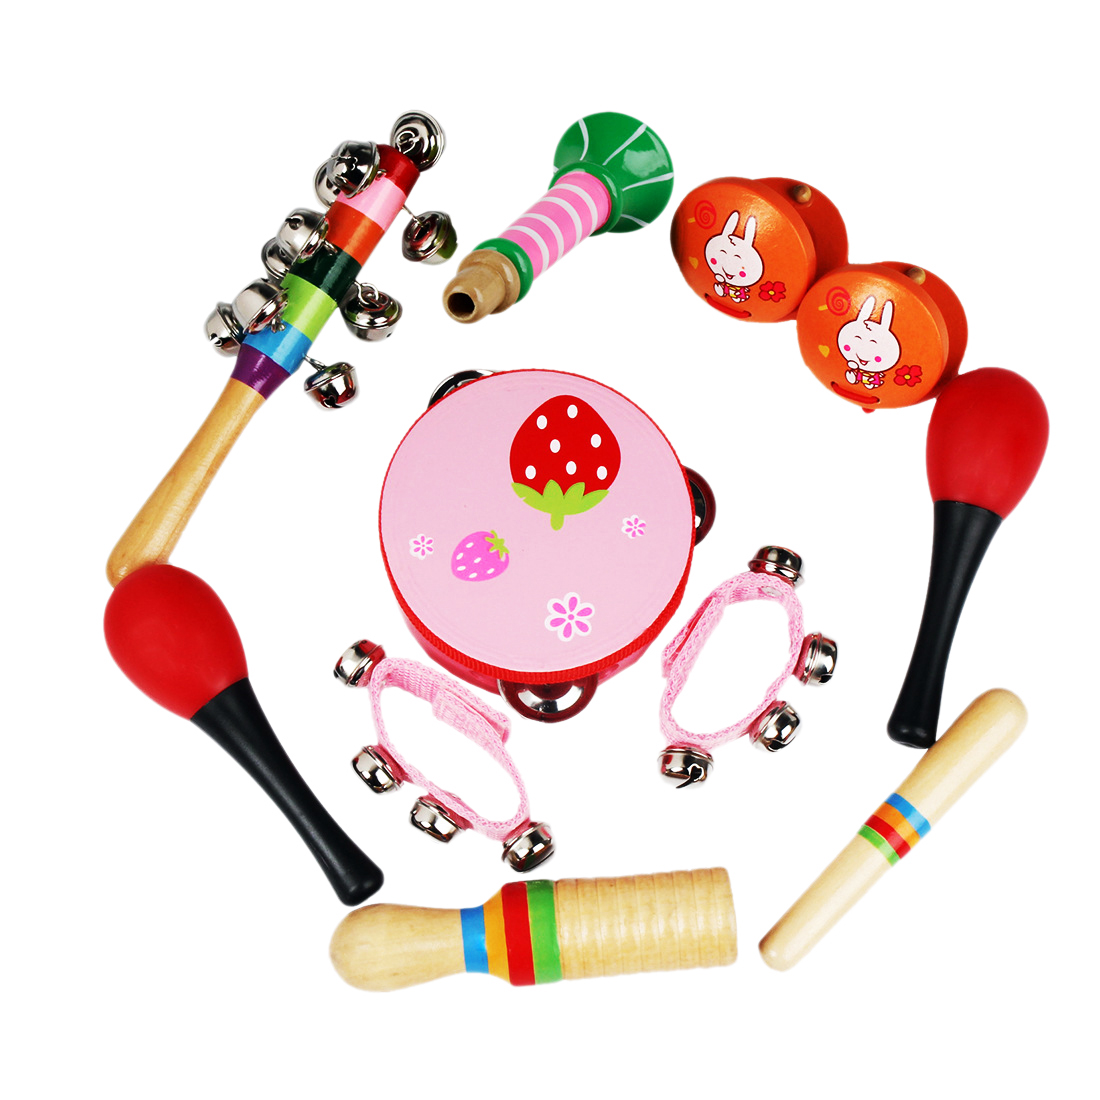 все цены на NFSTRIKE 10Pcs Early Education Musical Toys Set Support Children Learning Music Kit Toy Musical Instruments for Kids Baby 2018